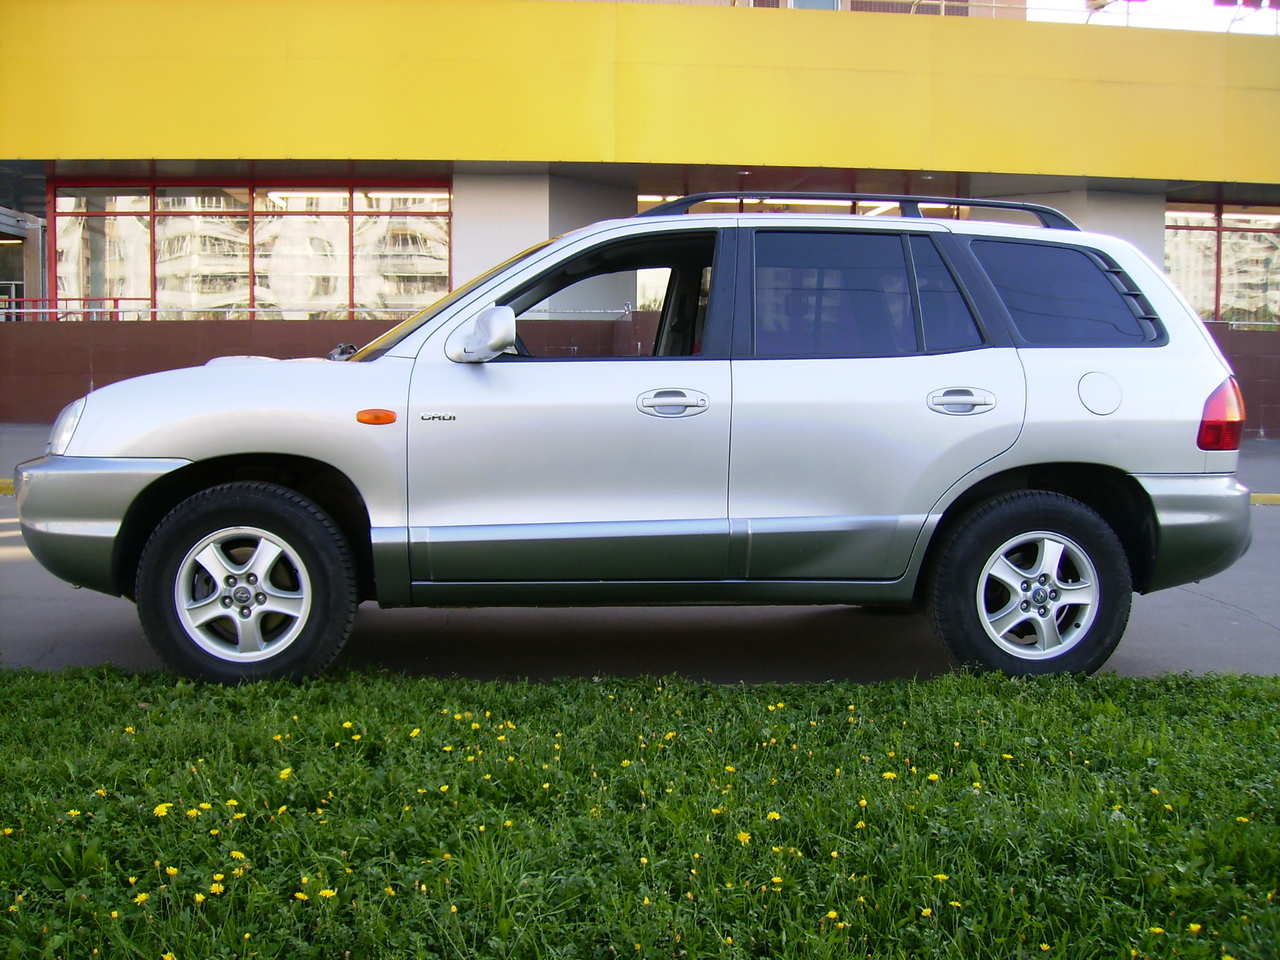 used 2002 hyundai santa fe photos 1990cc diesel manual for sale. Black Bedroom Furniture Sets. Home Design Ideas